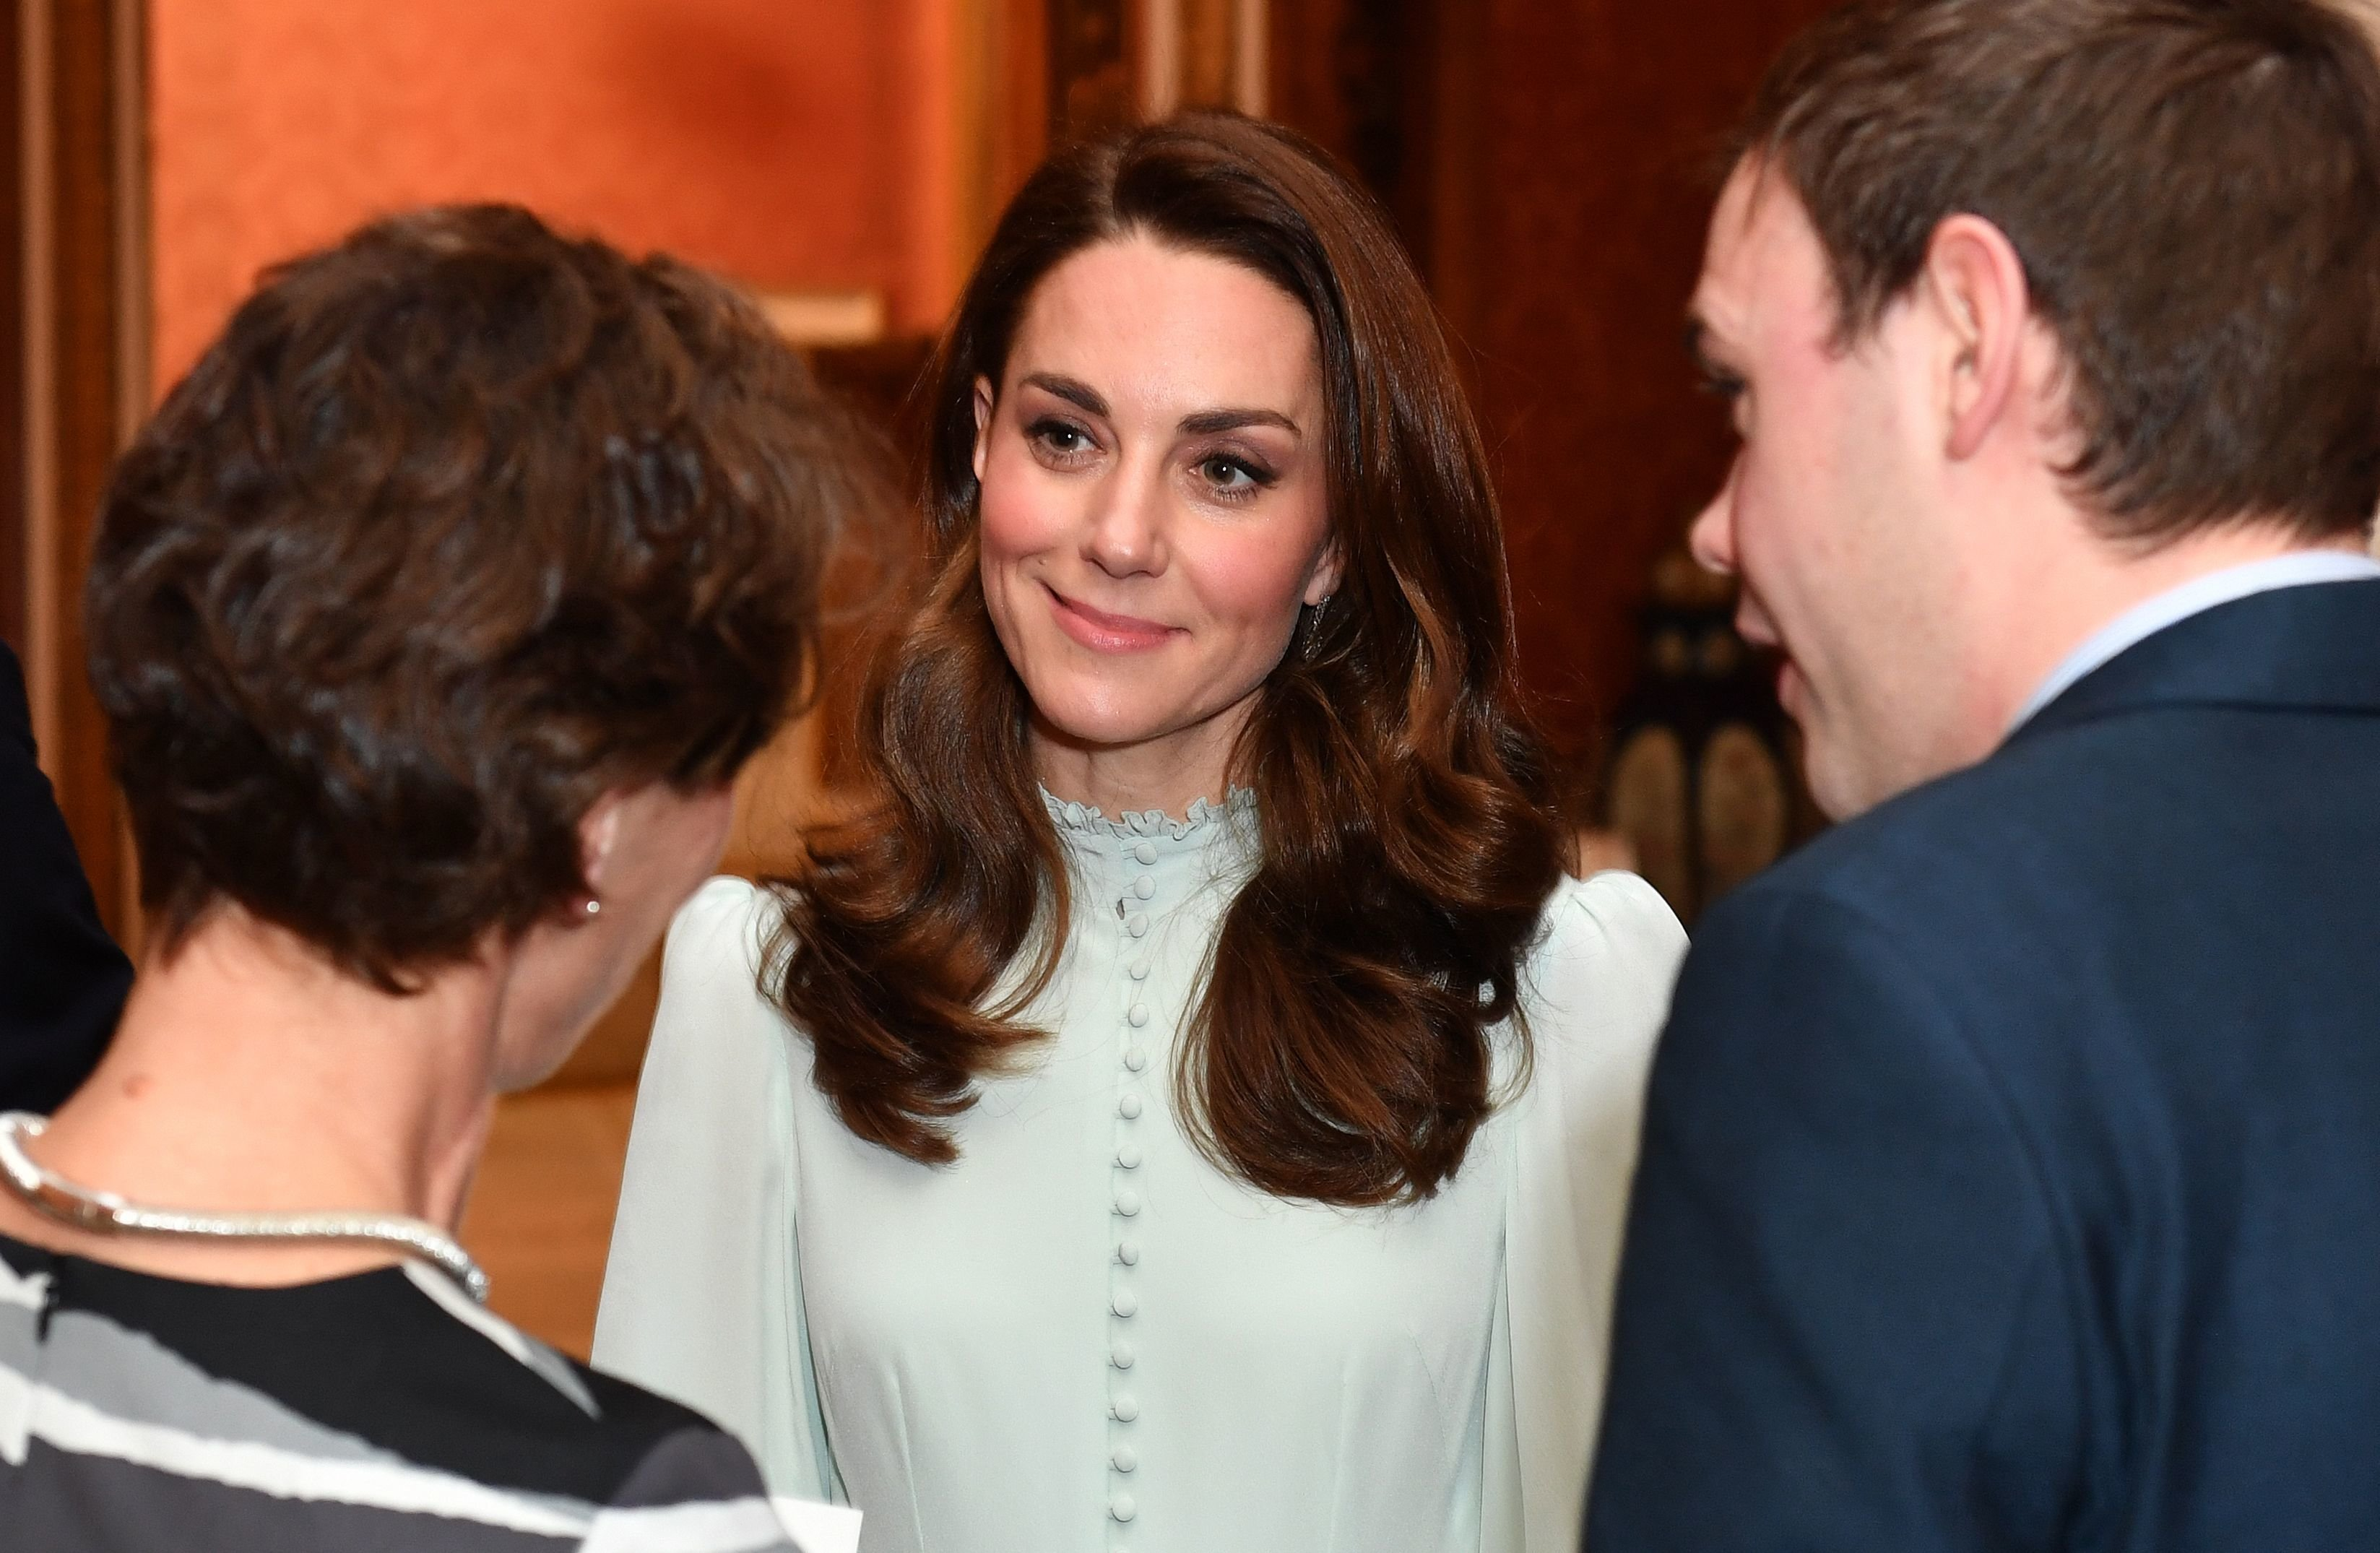 Catherine, Duchess of Cambridge, talks with guests as she attends a reception to mark the 50th Anniversary of the investiture